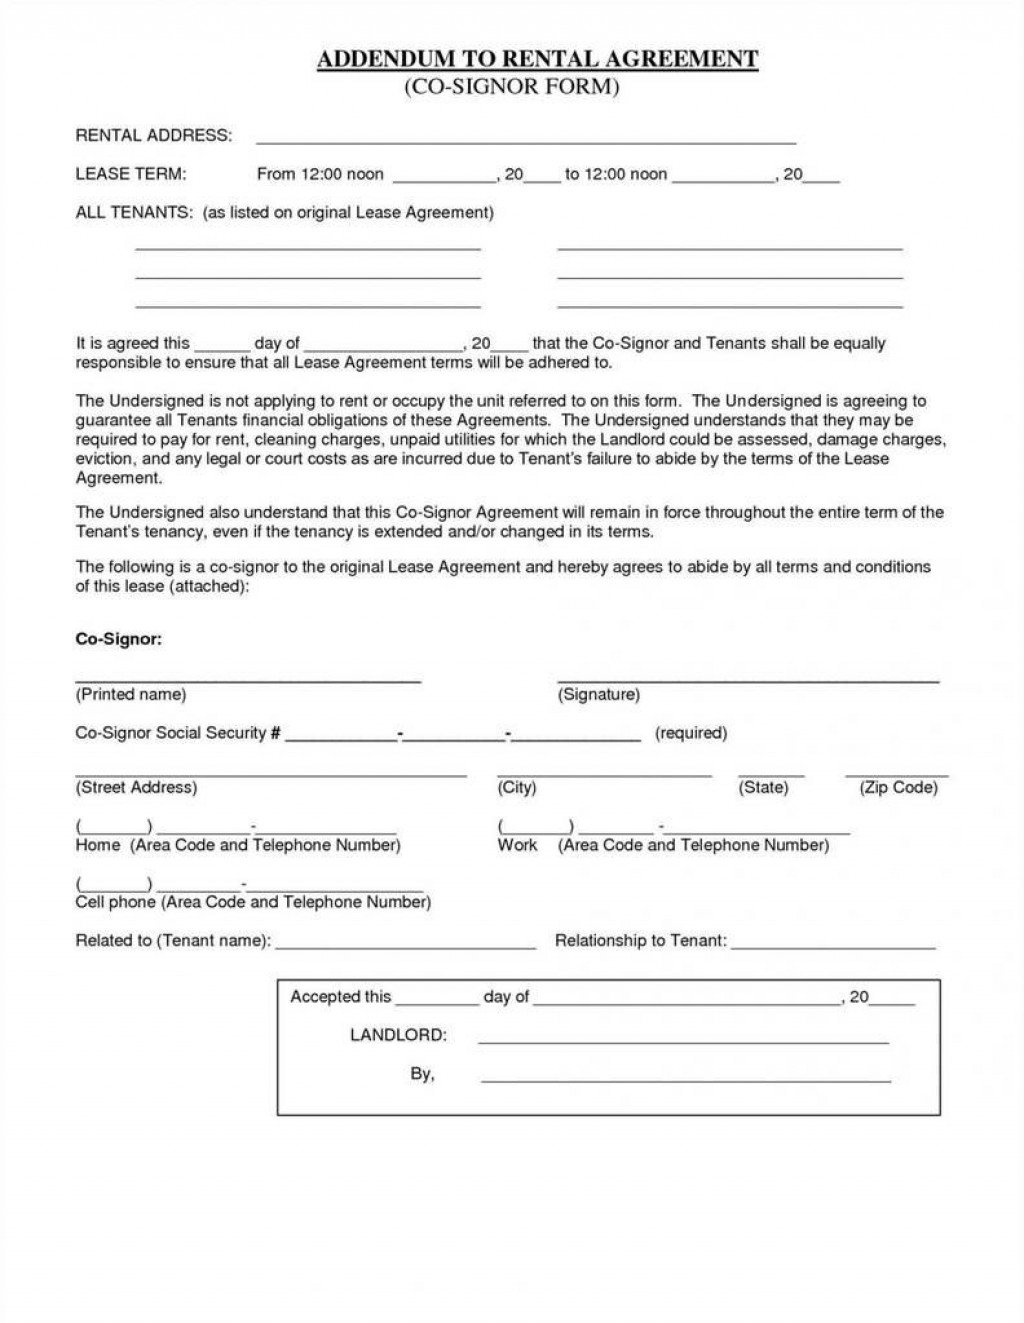 007 Unusual Free Sublease Agreement Template South Africa High Resolution  Simple Residential Lease Word DownloadLarge